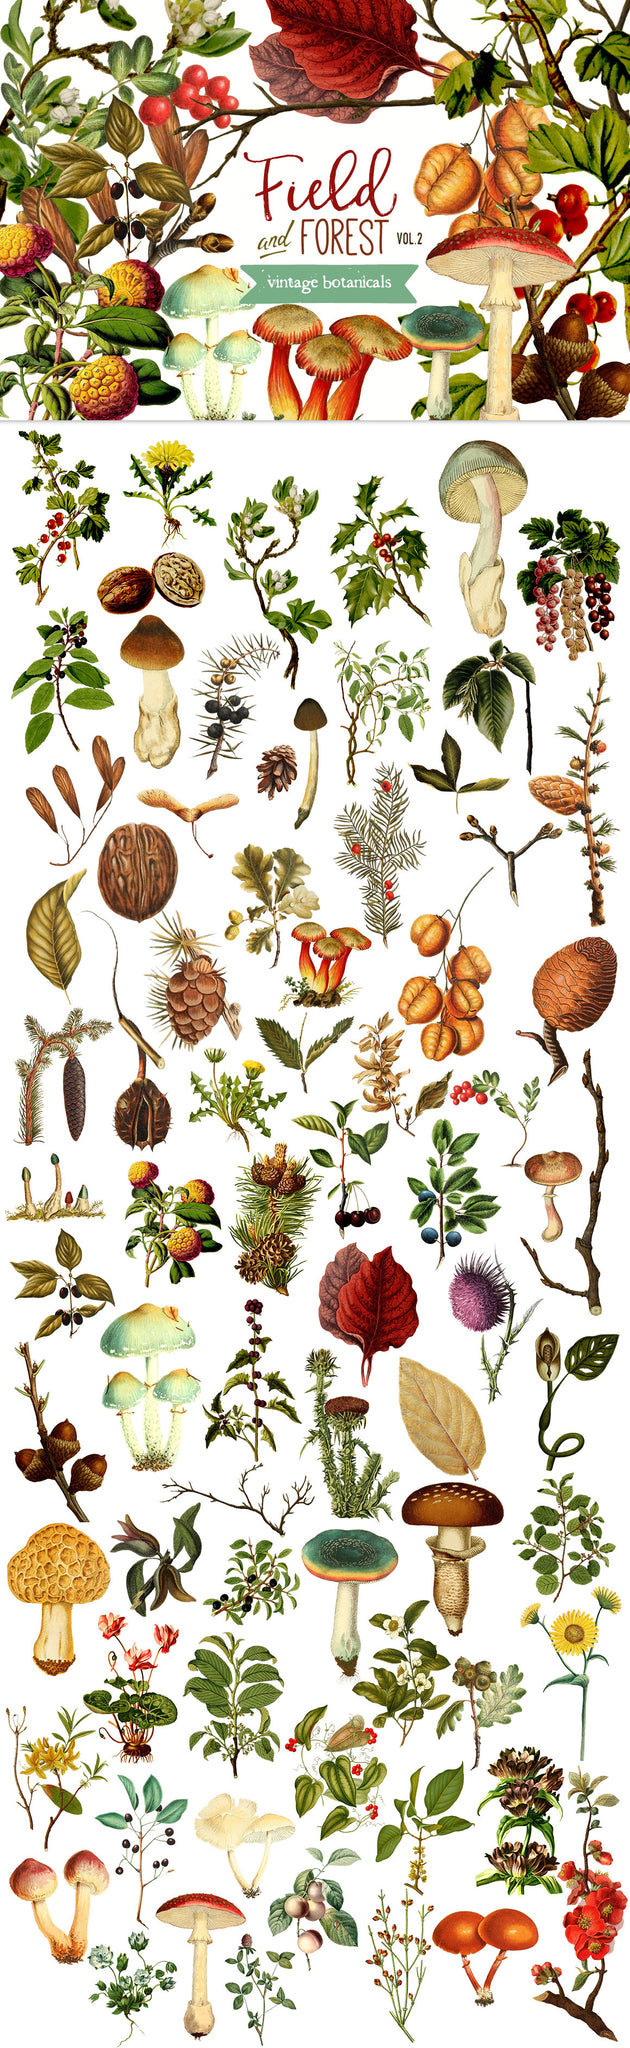 Field and Forest Vintage Botanical Graphics